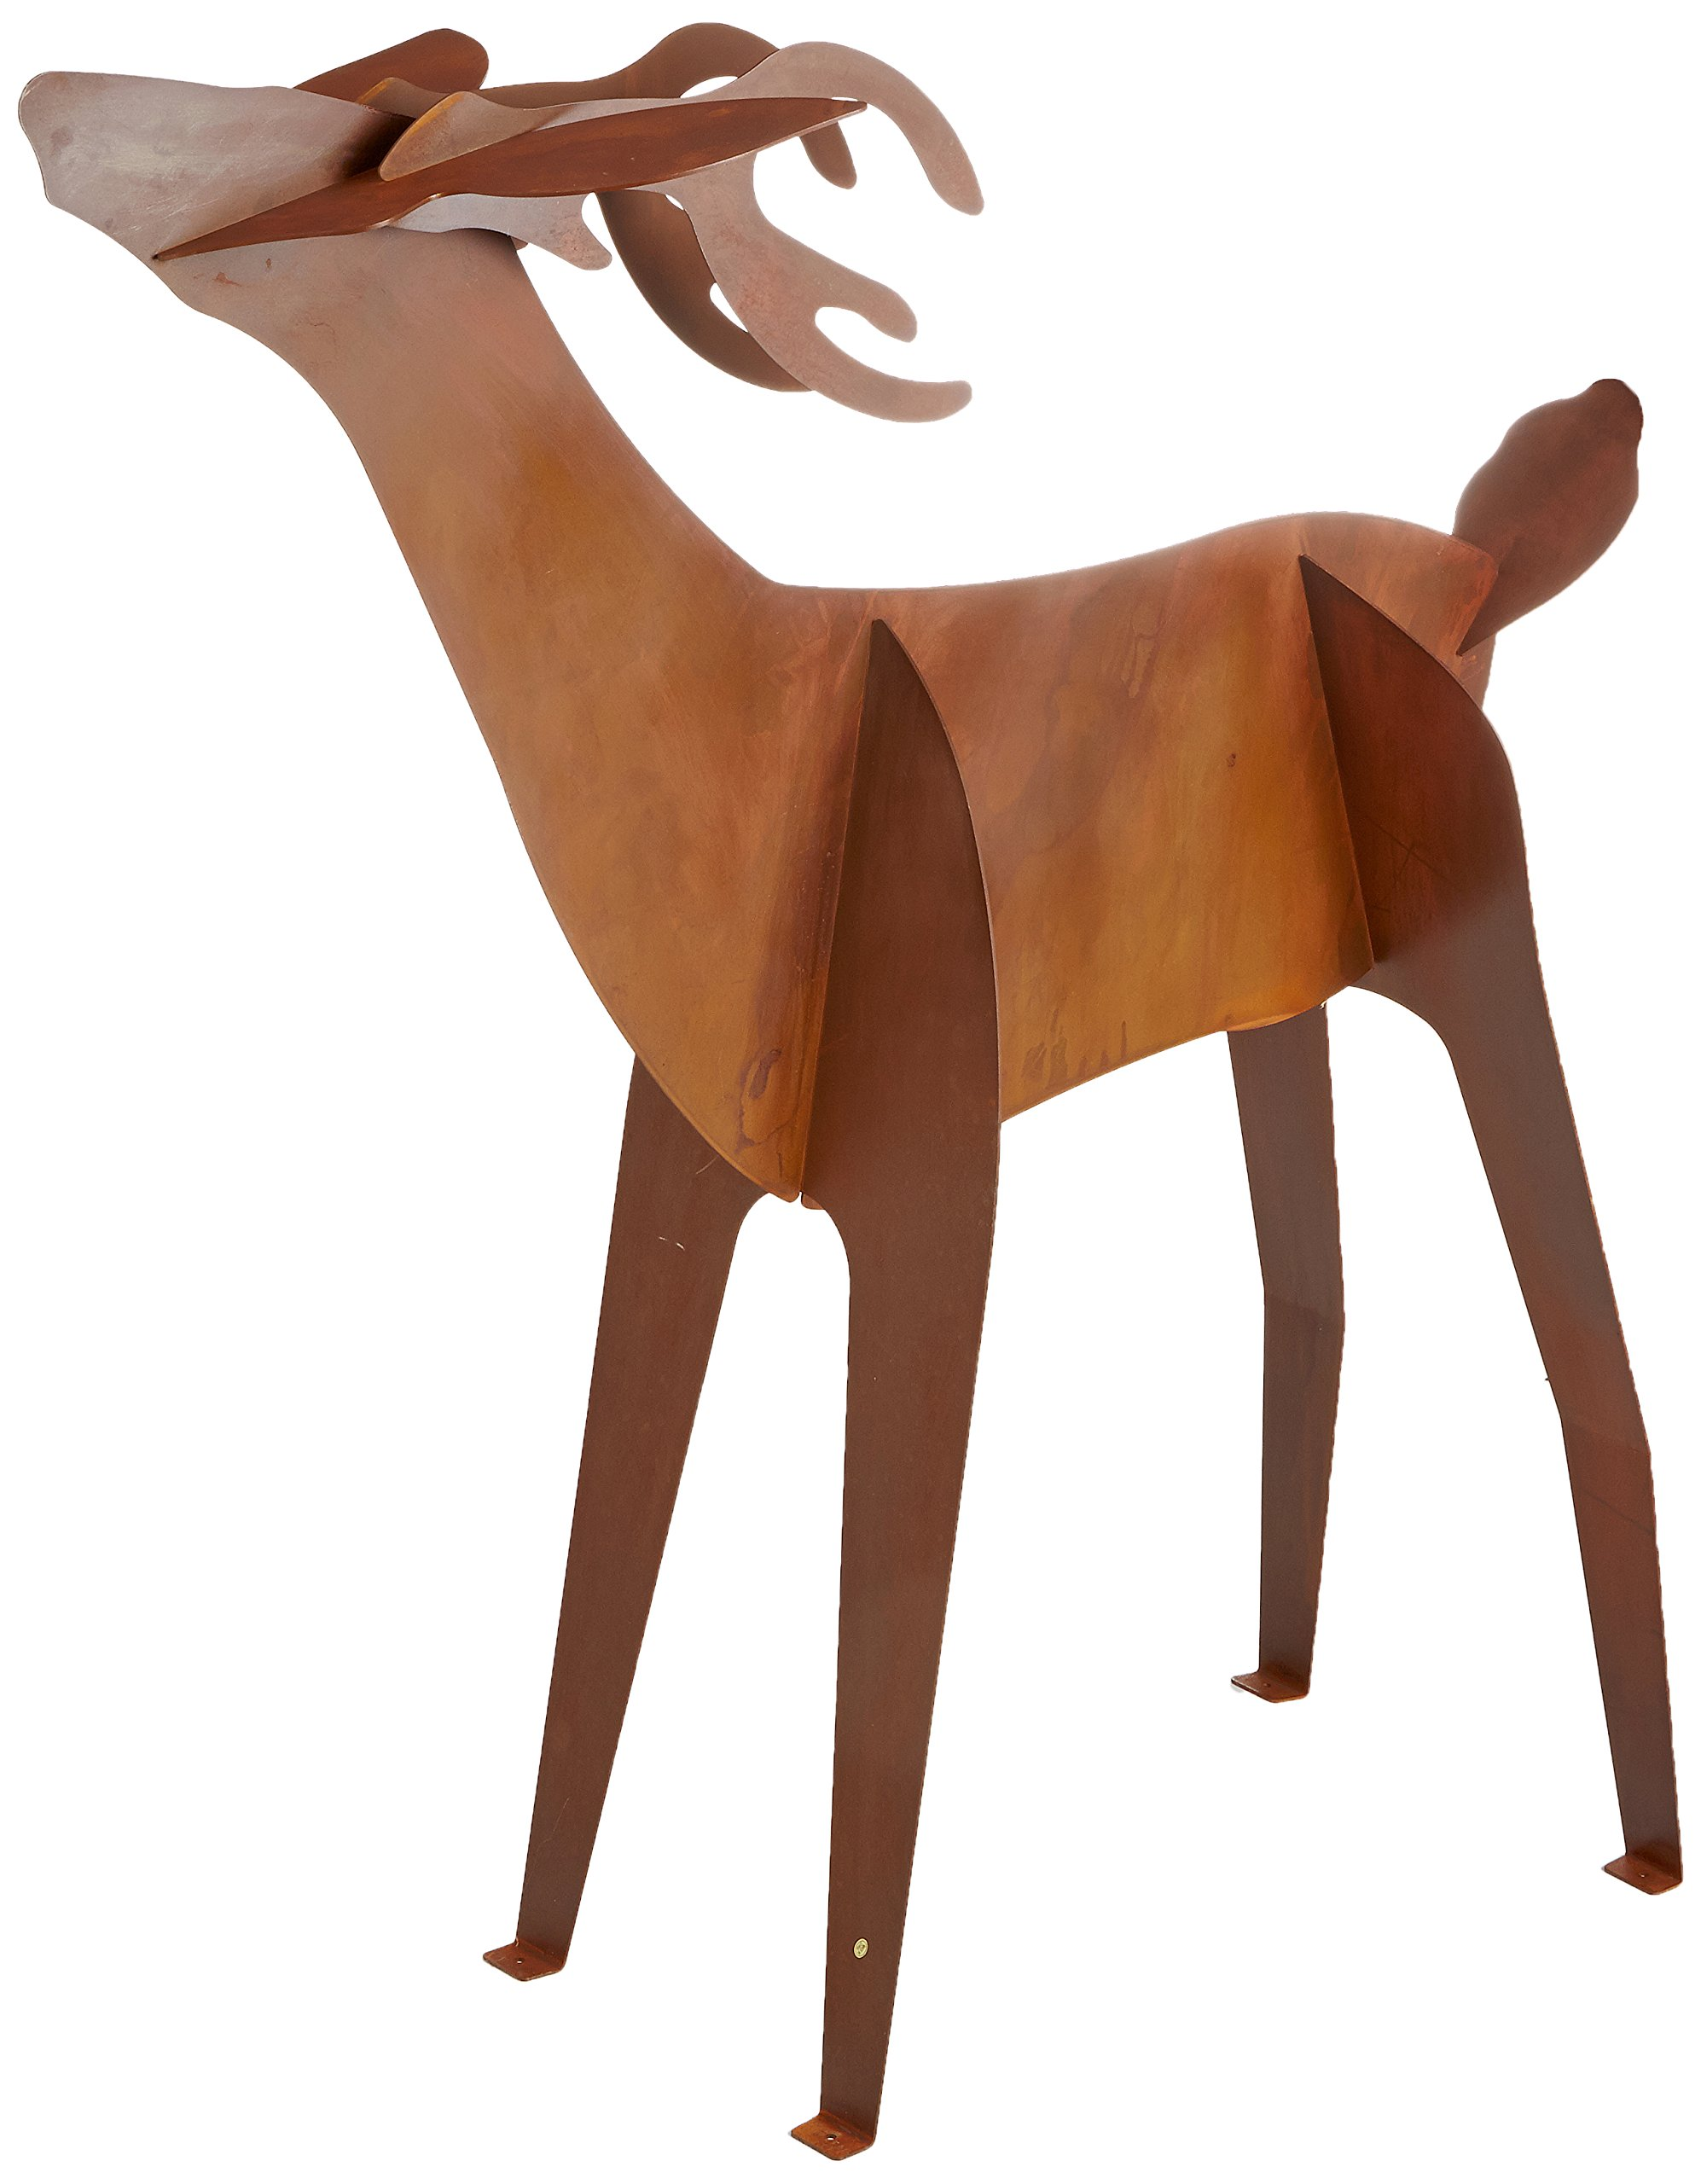 Fantasy Fauna LSBH-81 Buck 'Testing The Winds' Pre-Rusted Steel Sculpture, Life Size by Fantasy Fauna